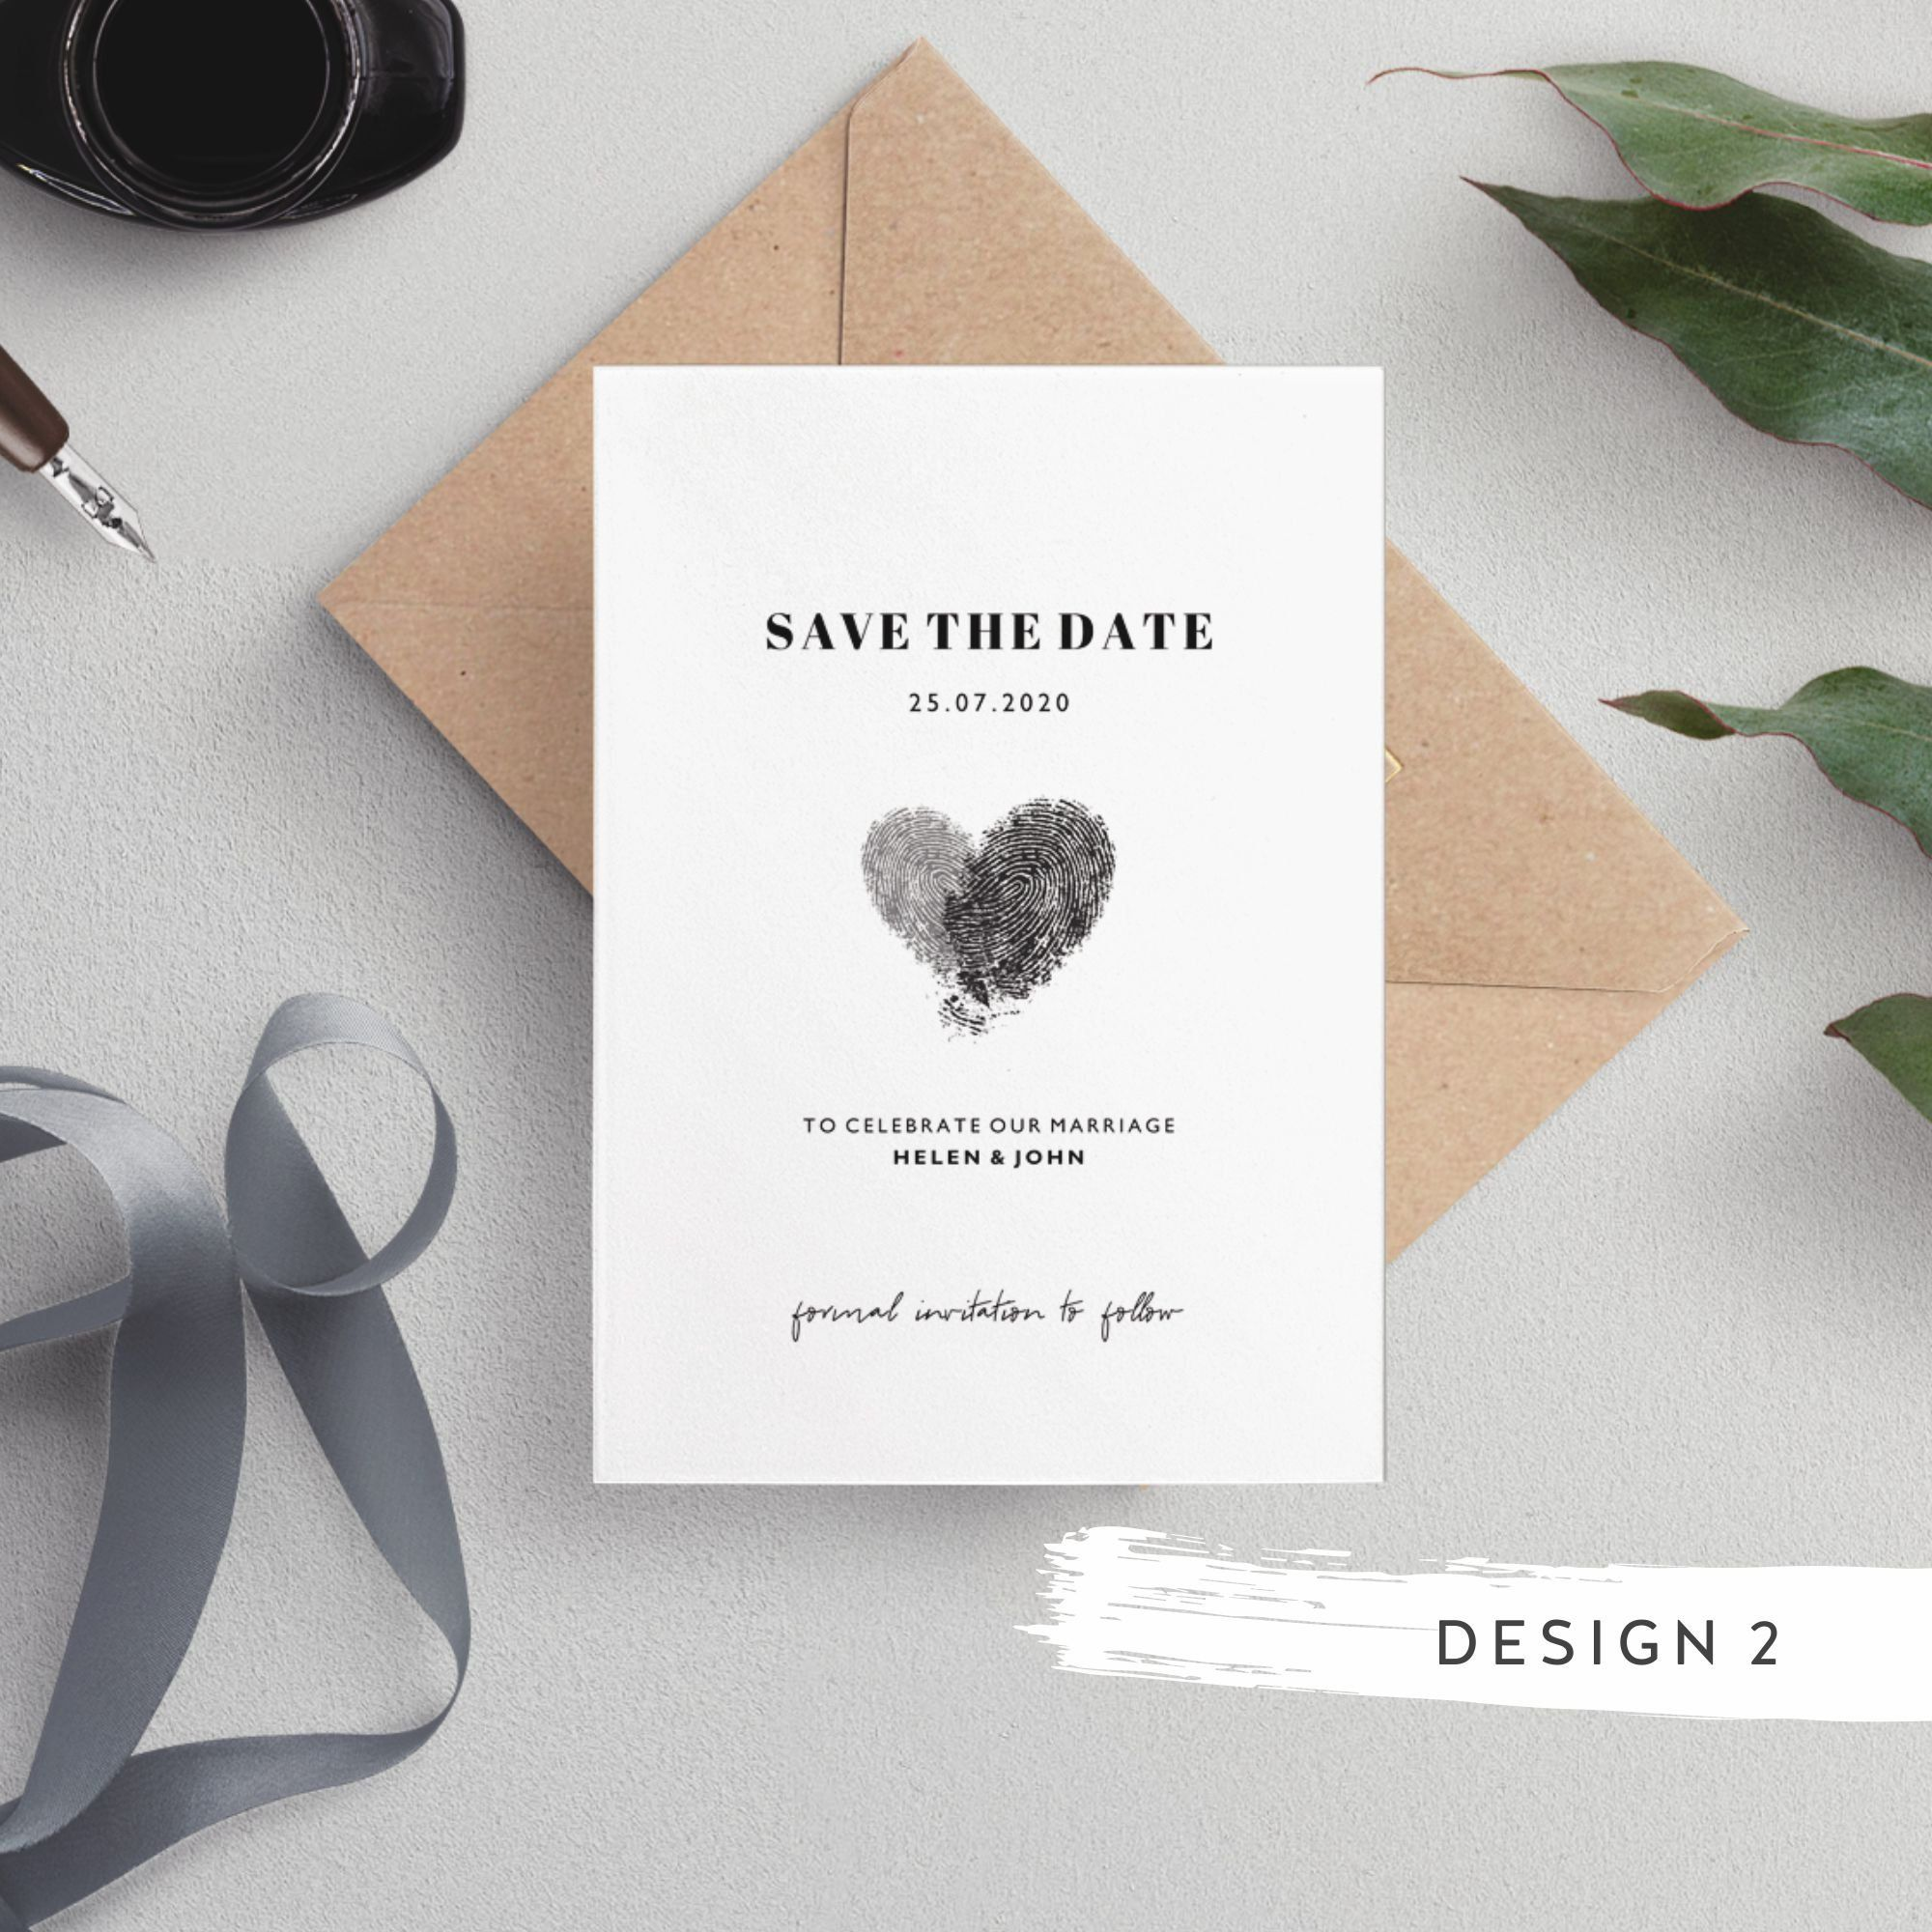 Simple Save The Date Rustic Save The Date Personalised Save The Dates Save The Date Invite Thumb Print Save The Date Rustic 081 Typography Save The Dates Rustic Save The Dates